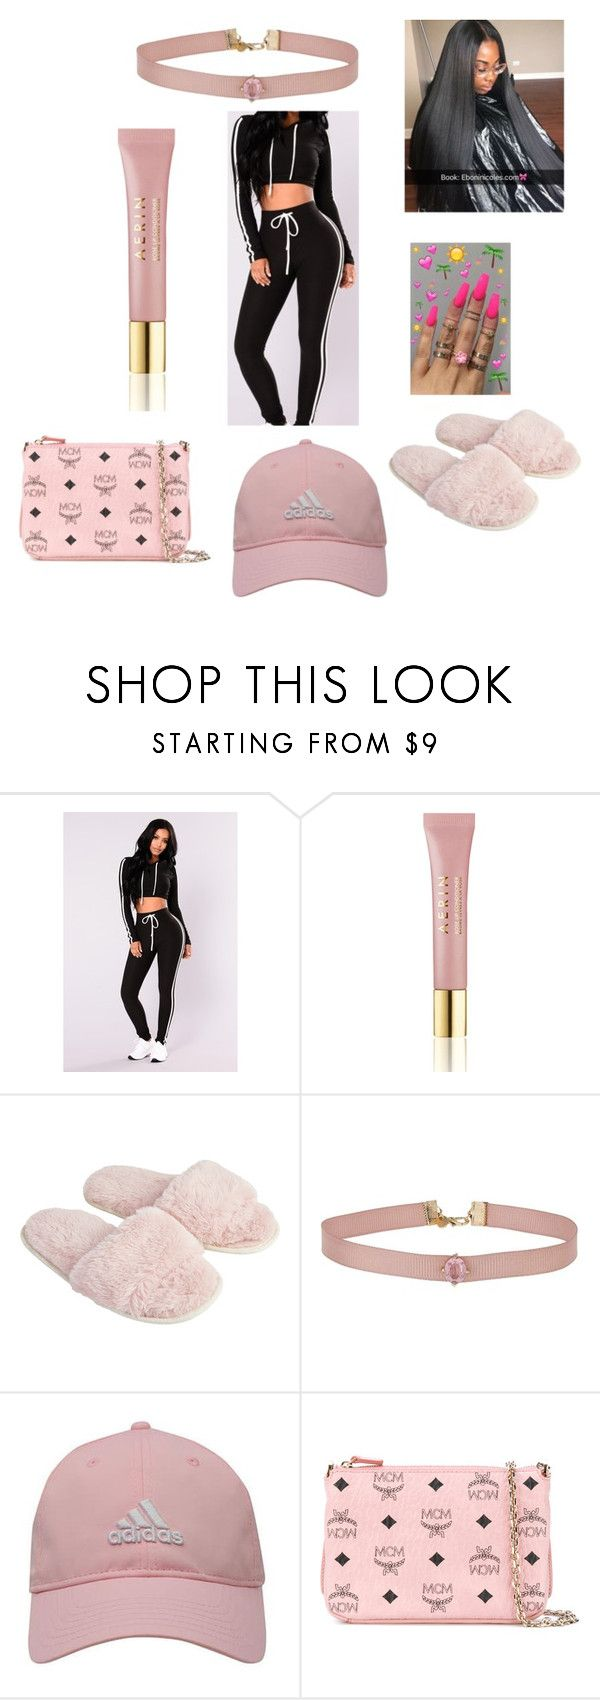 """""""Untitled #173"""" by imtruetoself ❤ liked on Polyvore featuring AERIN, Accessorize, Miss Selfridge, adidas Golf and MCM"""